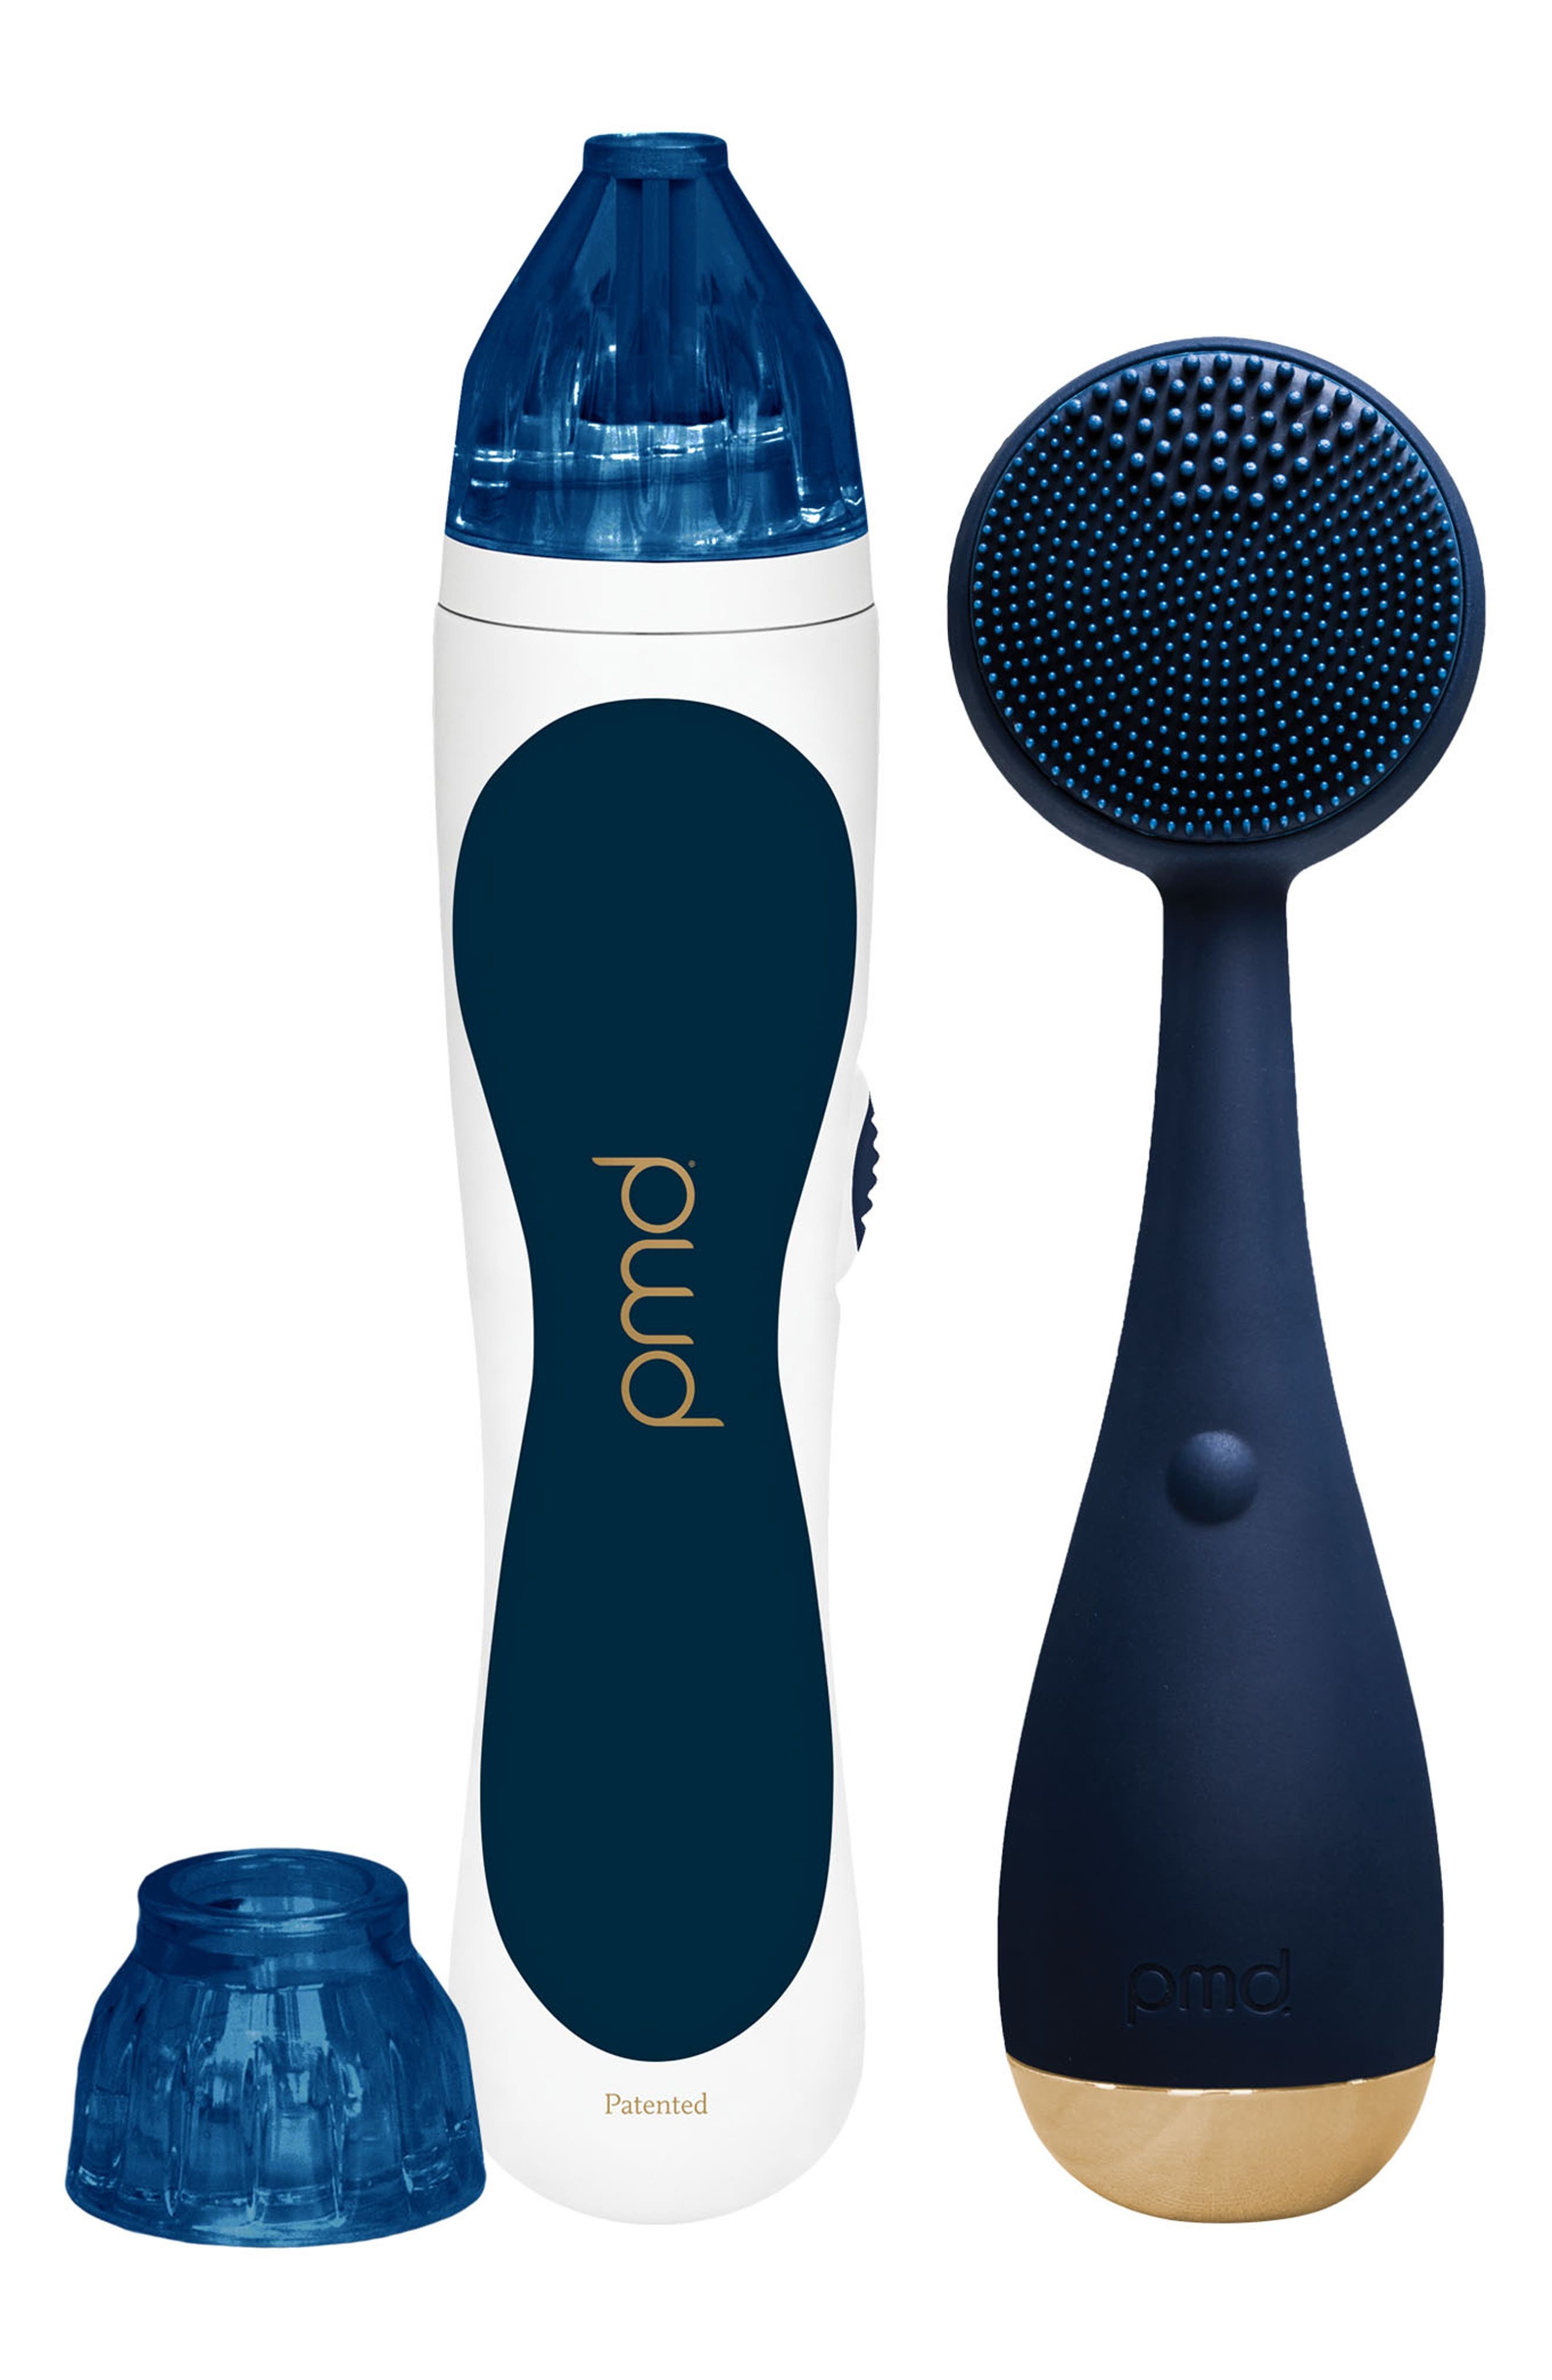 Navy Personal Microderm & Clean Device Duo,                         Main,                         color, 000